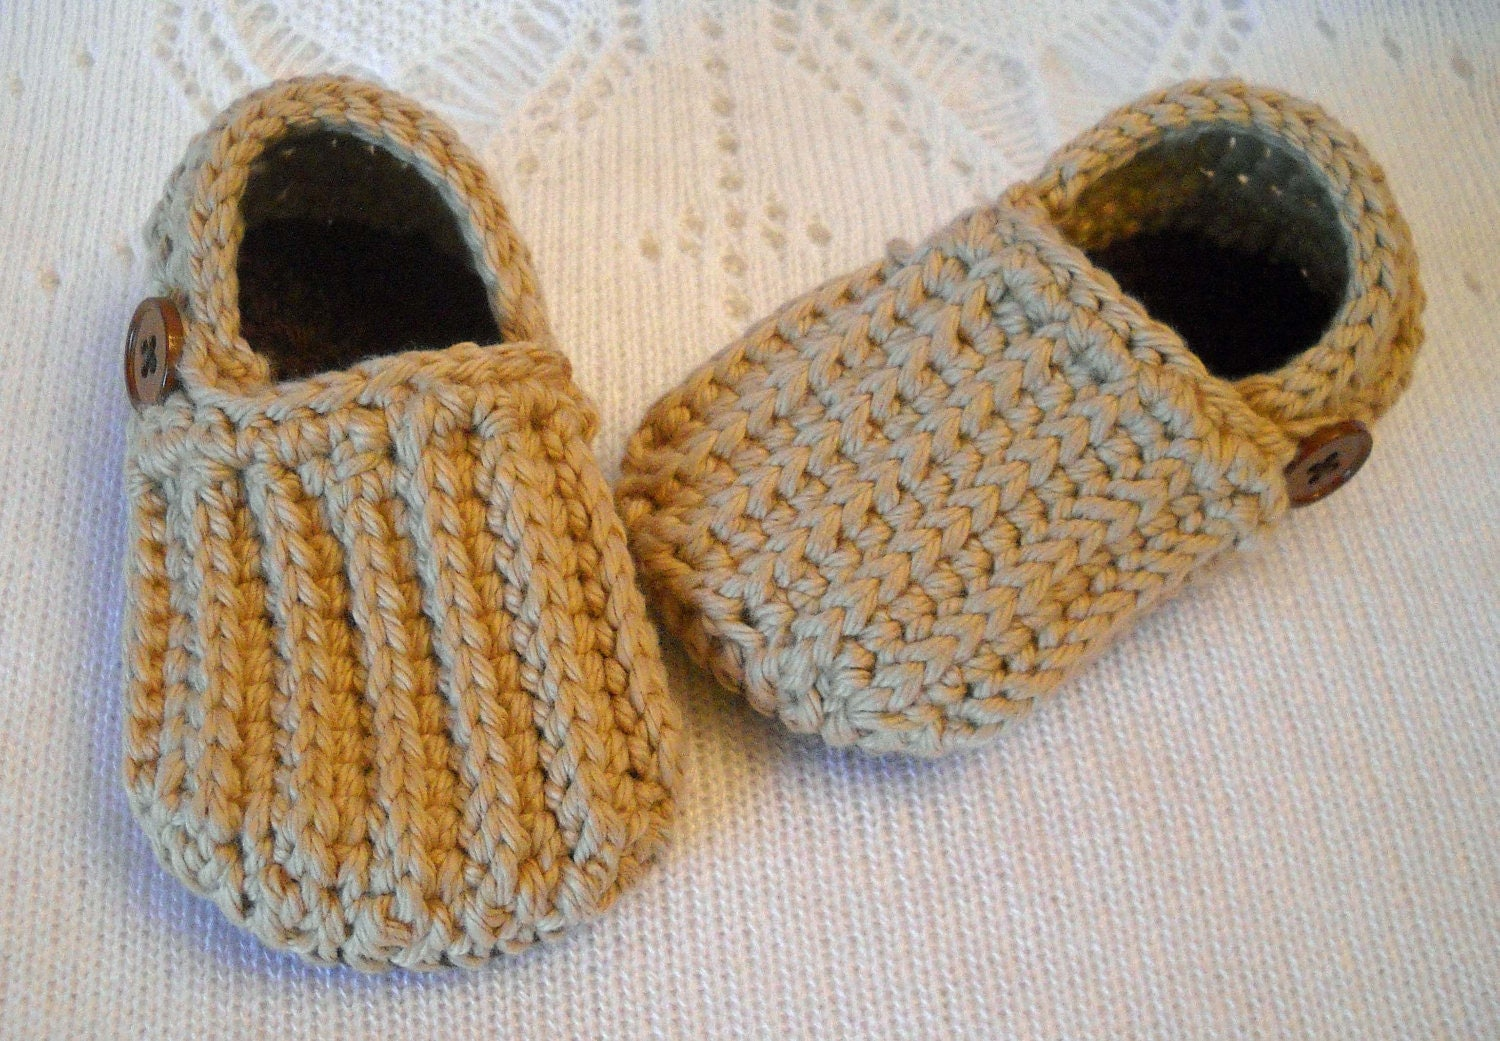 Crocheted Baby Boy Booties Shoes Brown Tan Lazy Day Slippers